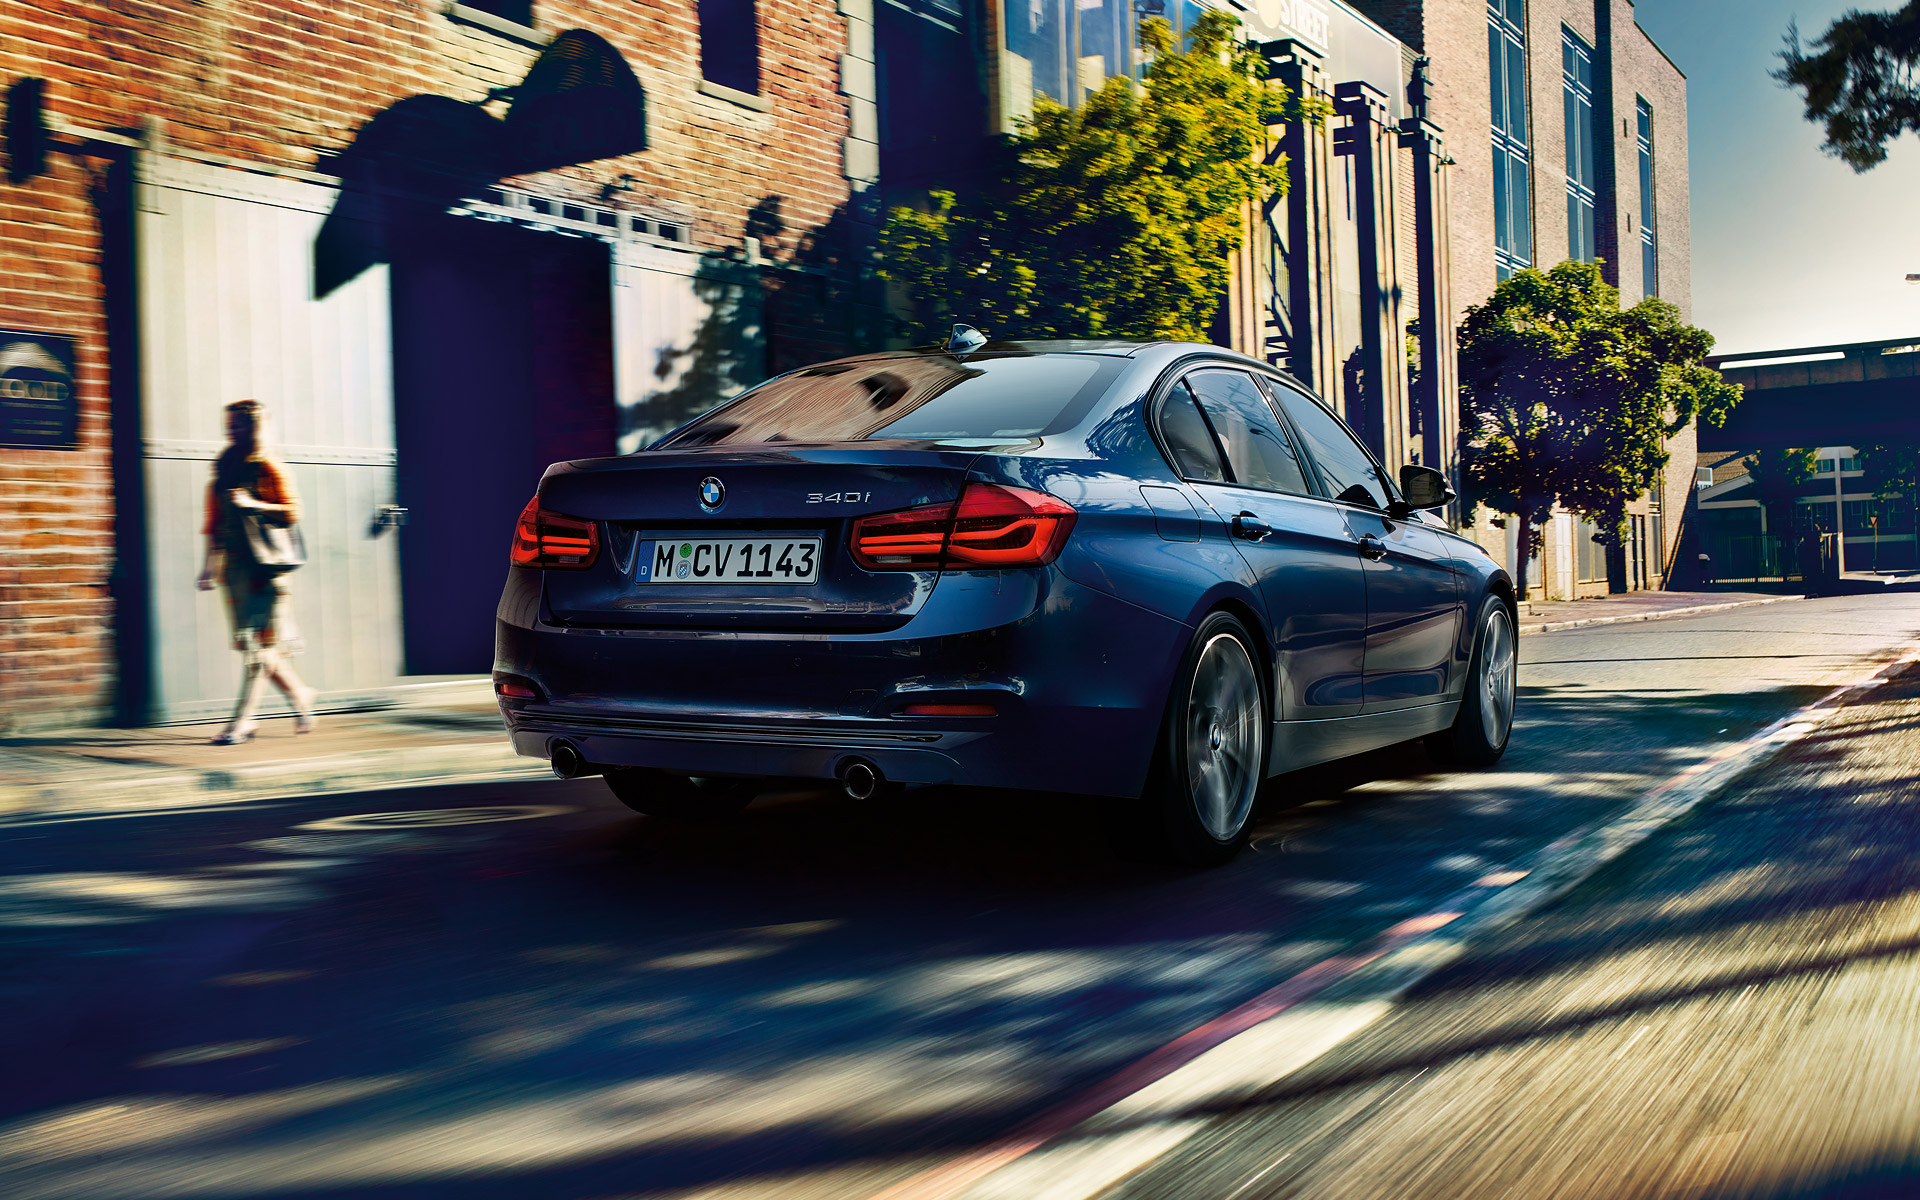 BMW 3 Series Sedan Right Rear-View city driving